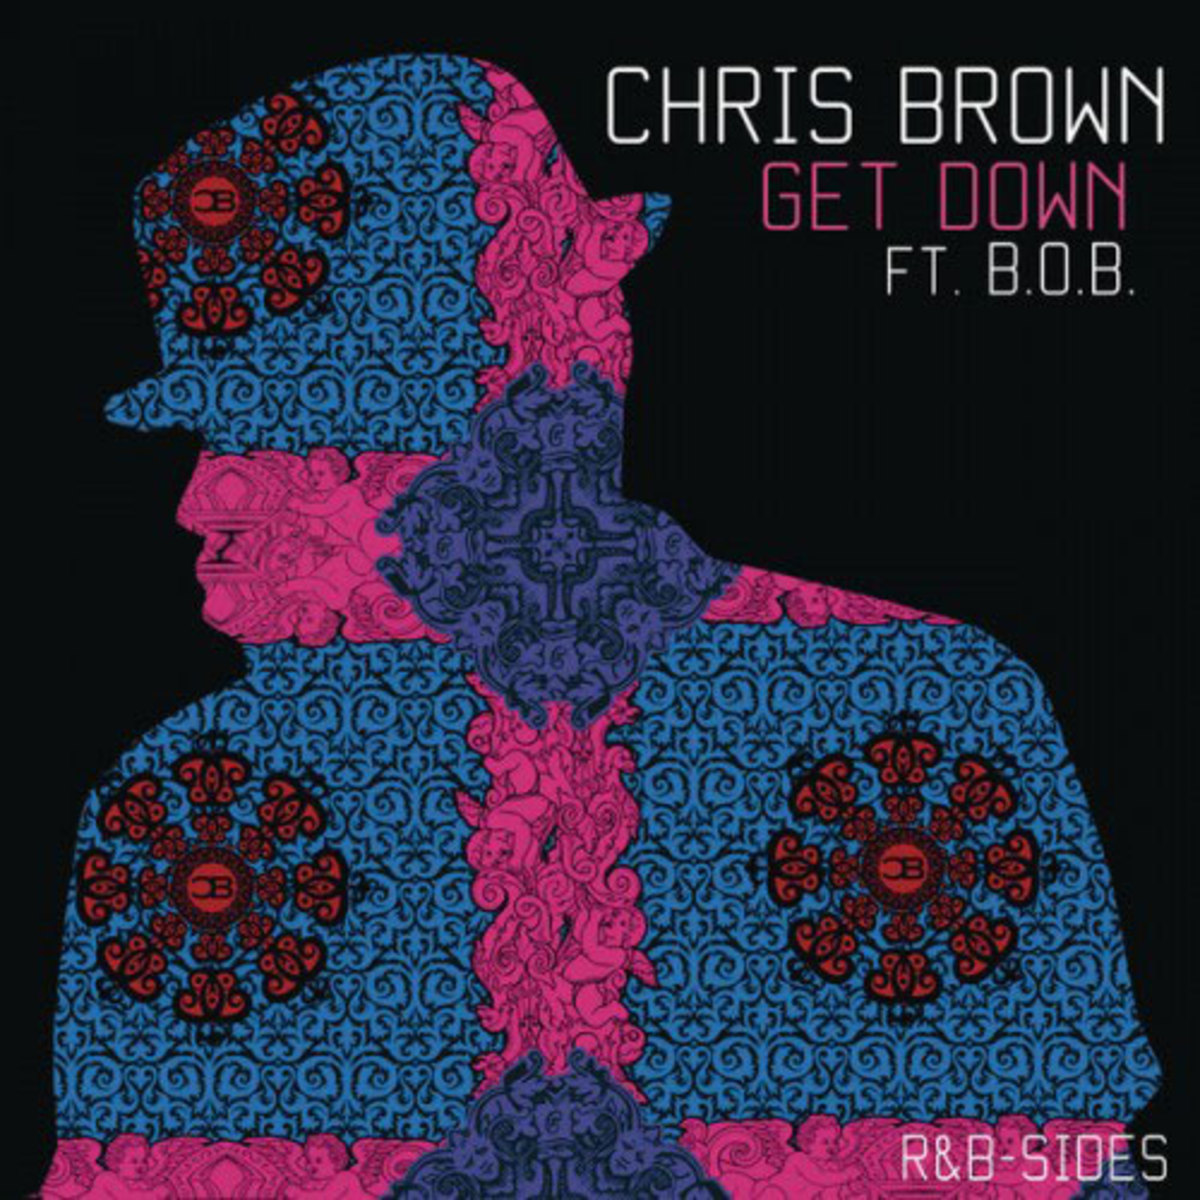 chrisbrown-getdown.jpg